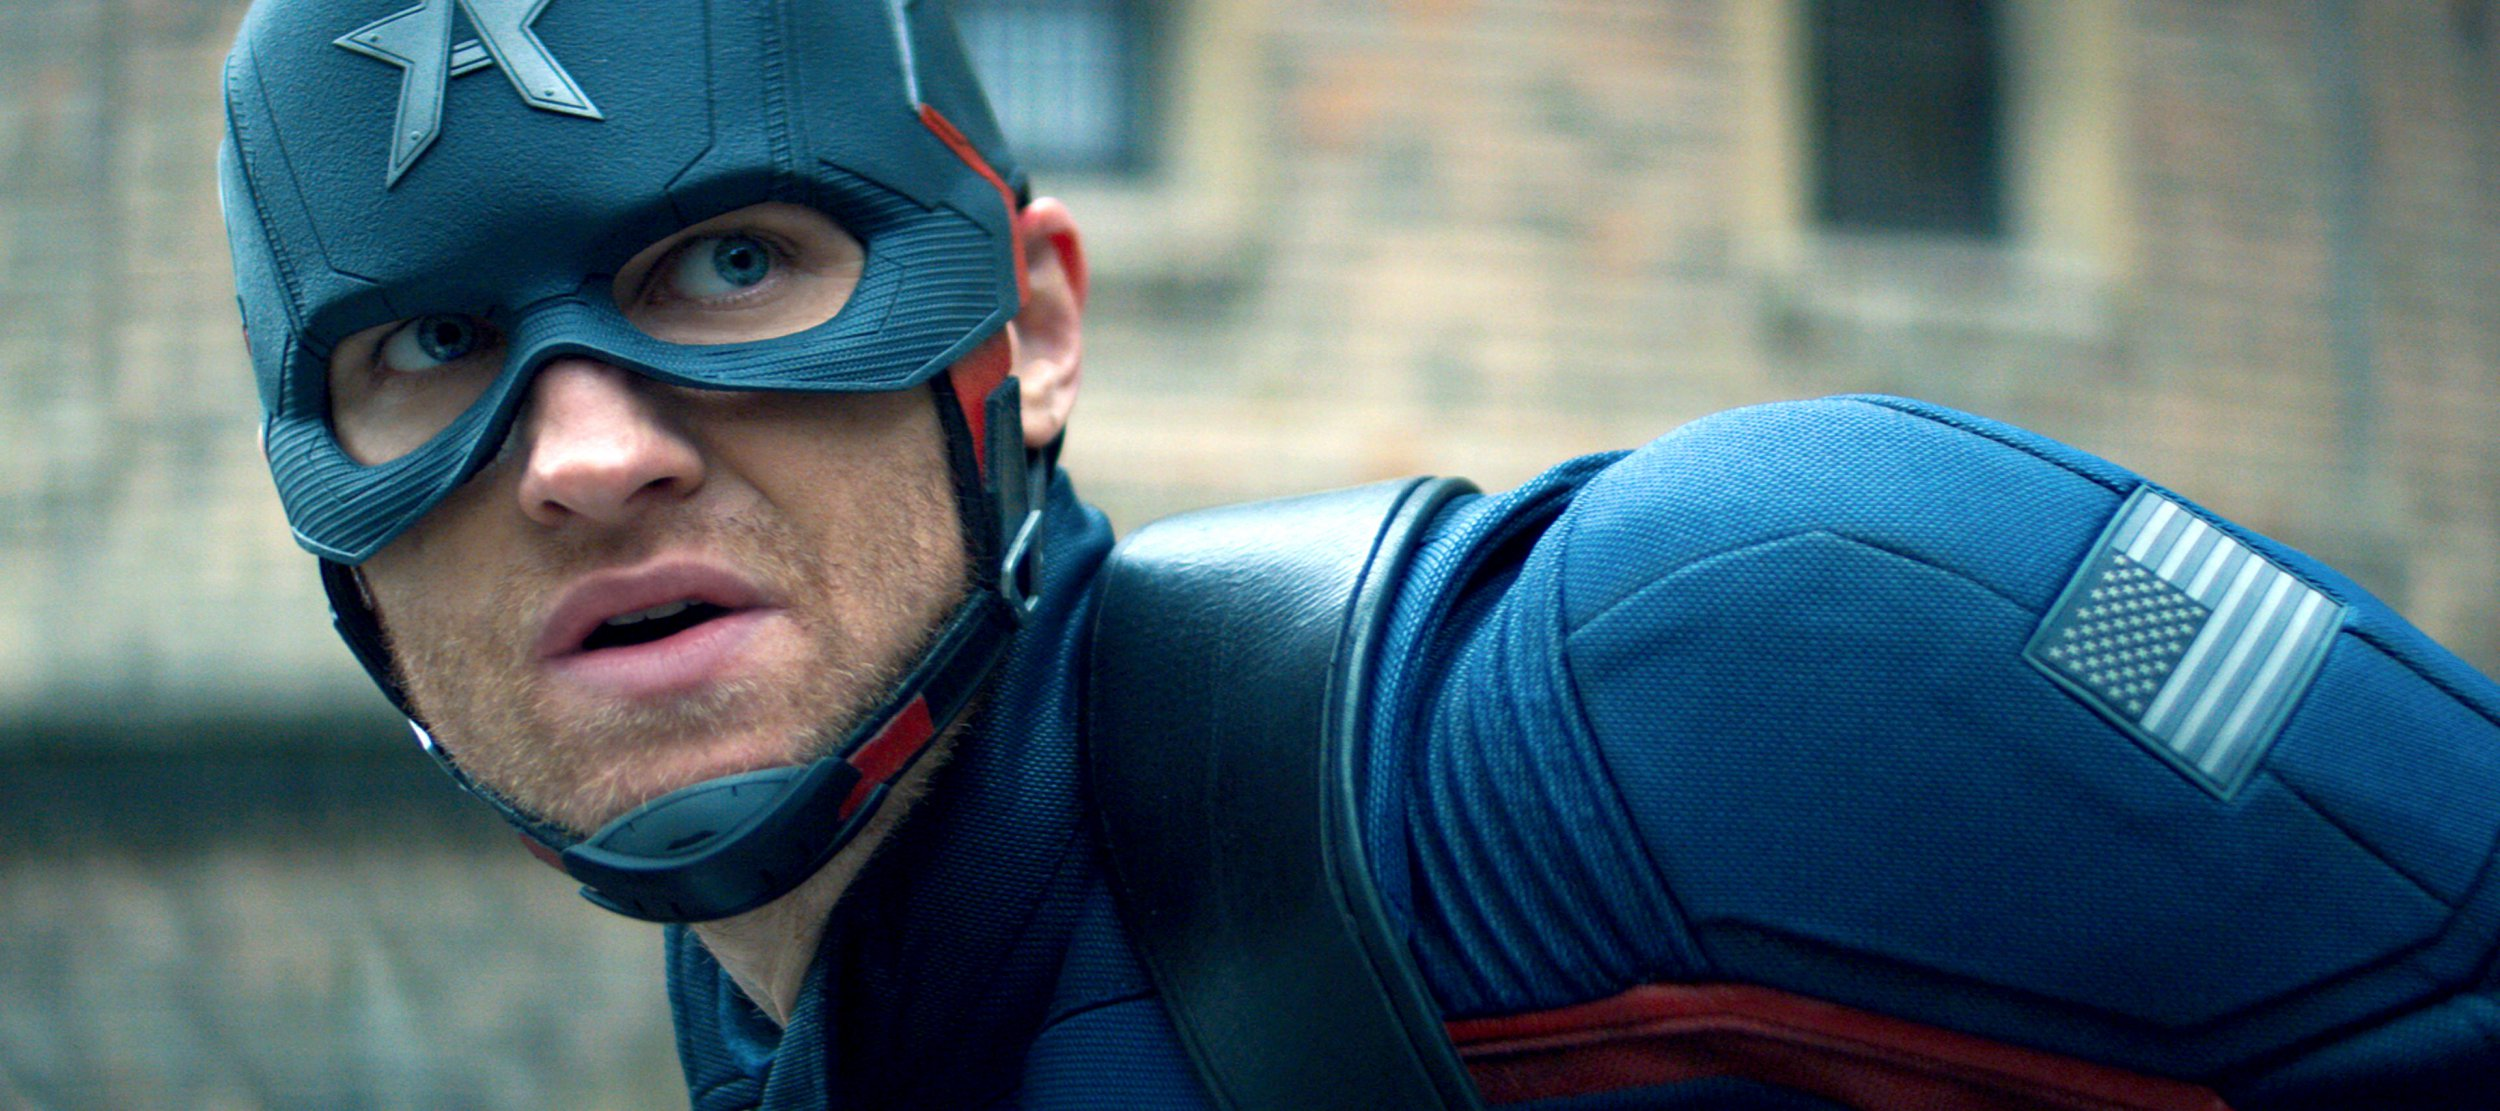 Falcon and Winter Soldier episode 5: What does mid-credits scene mean as John Walker is stripped of Captain America shield?